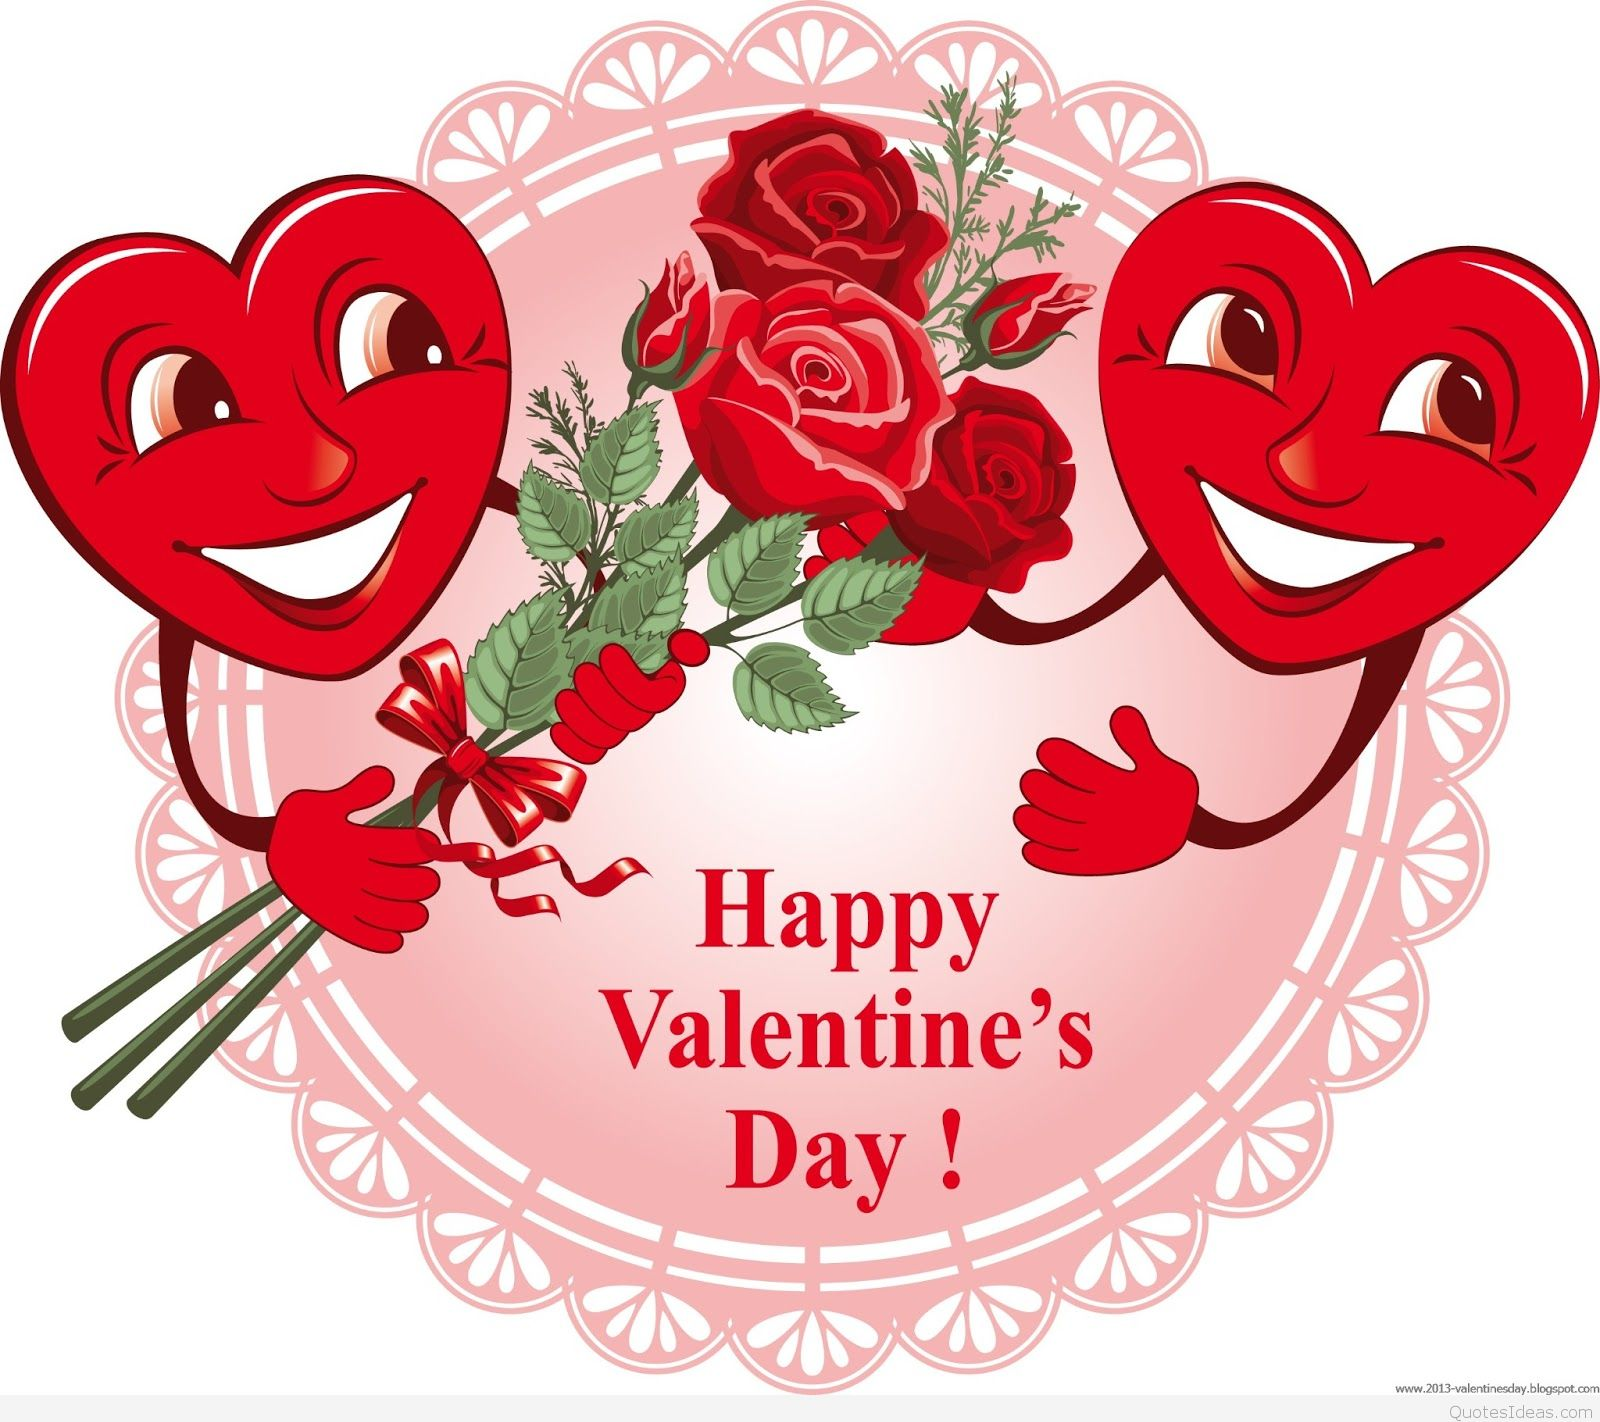 Download Images Of Valentine Day Photo Album Best easter gift ever – Valentines Day Post Cards